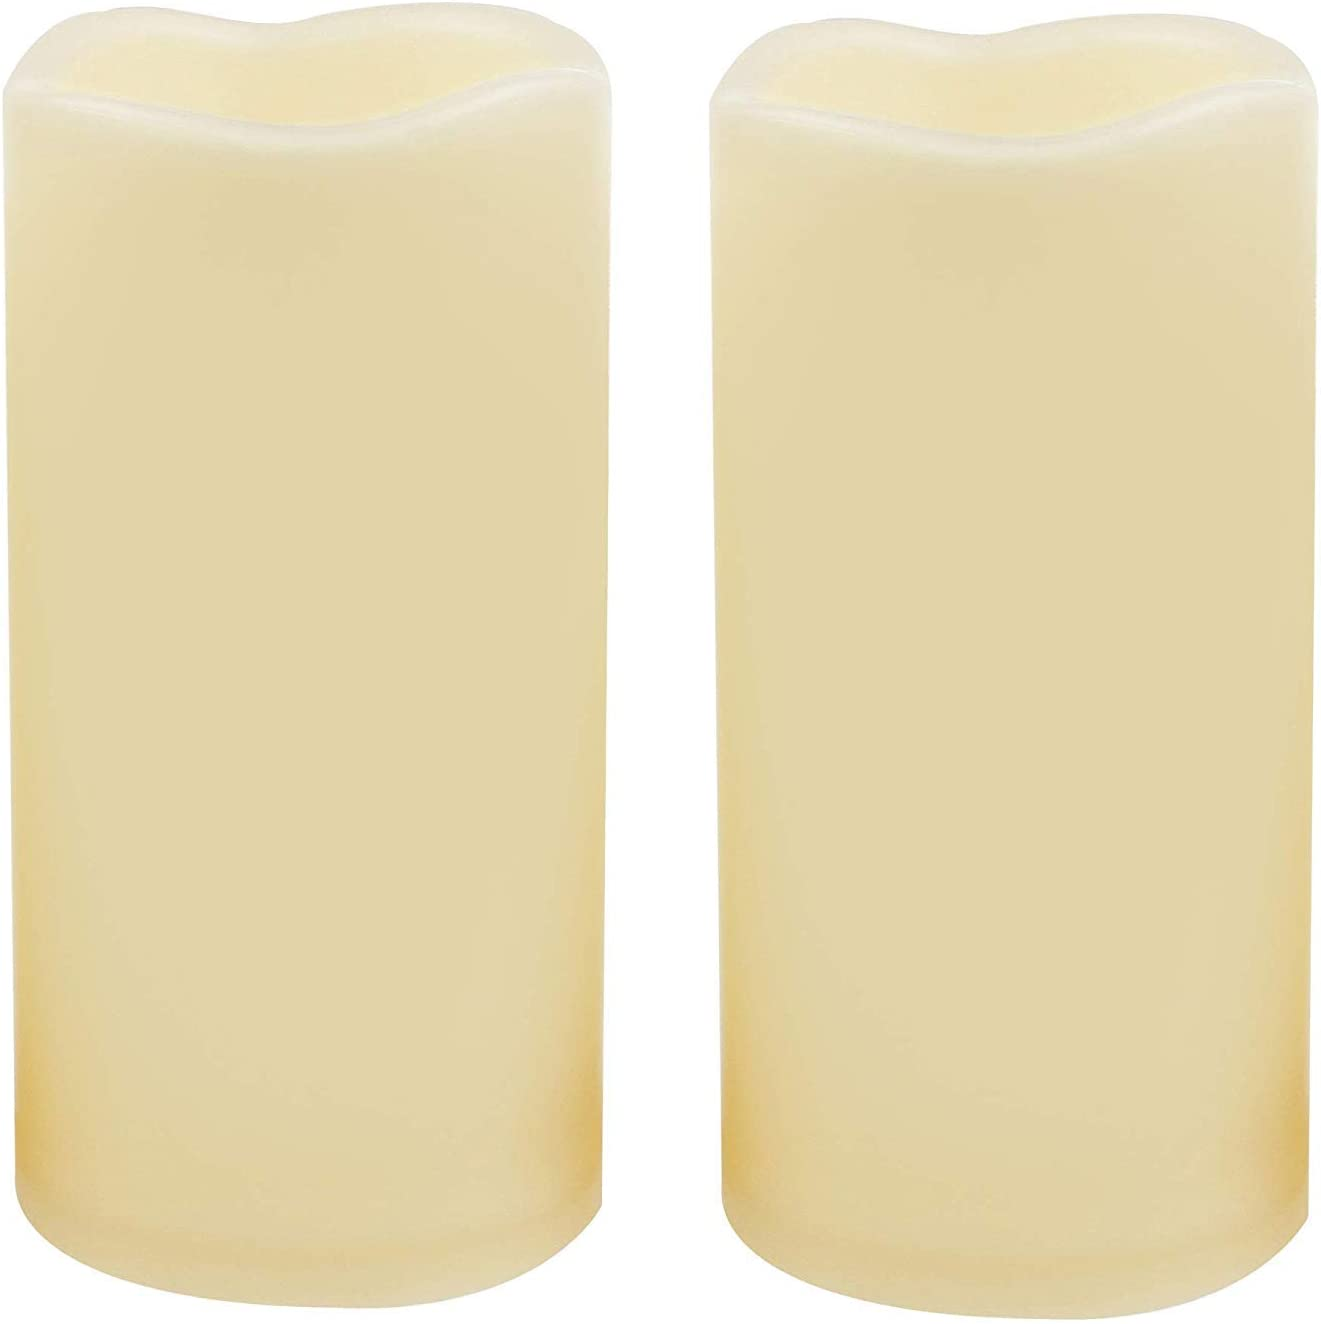 2 Waterproof Outdoor Battery Operated Flameless LED Pillar Candles with Timer Flickering Plastic Resin Electric Decorative Light for Lantern Patio Garden Home Decor Party Wedding Decorations 3x6 Inch